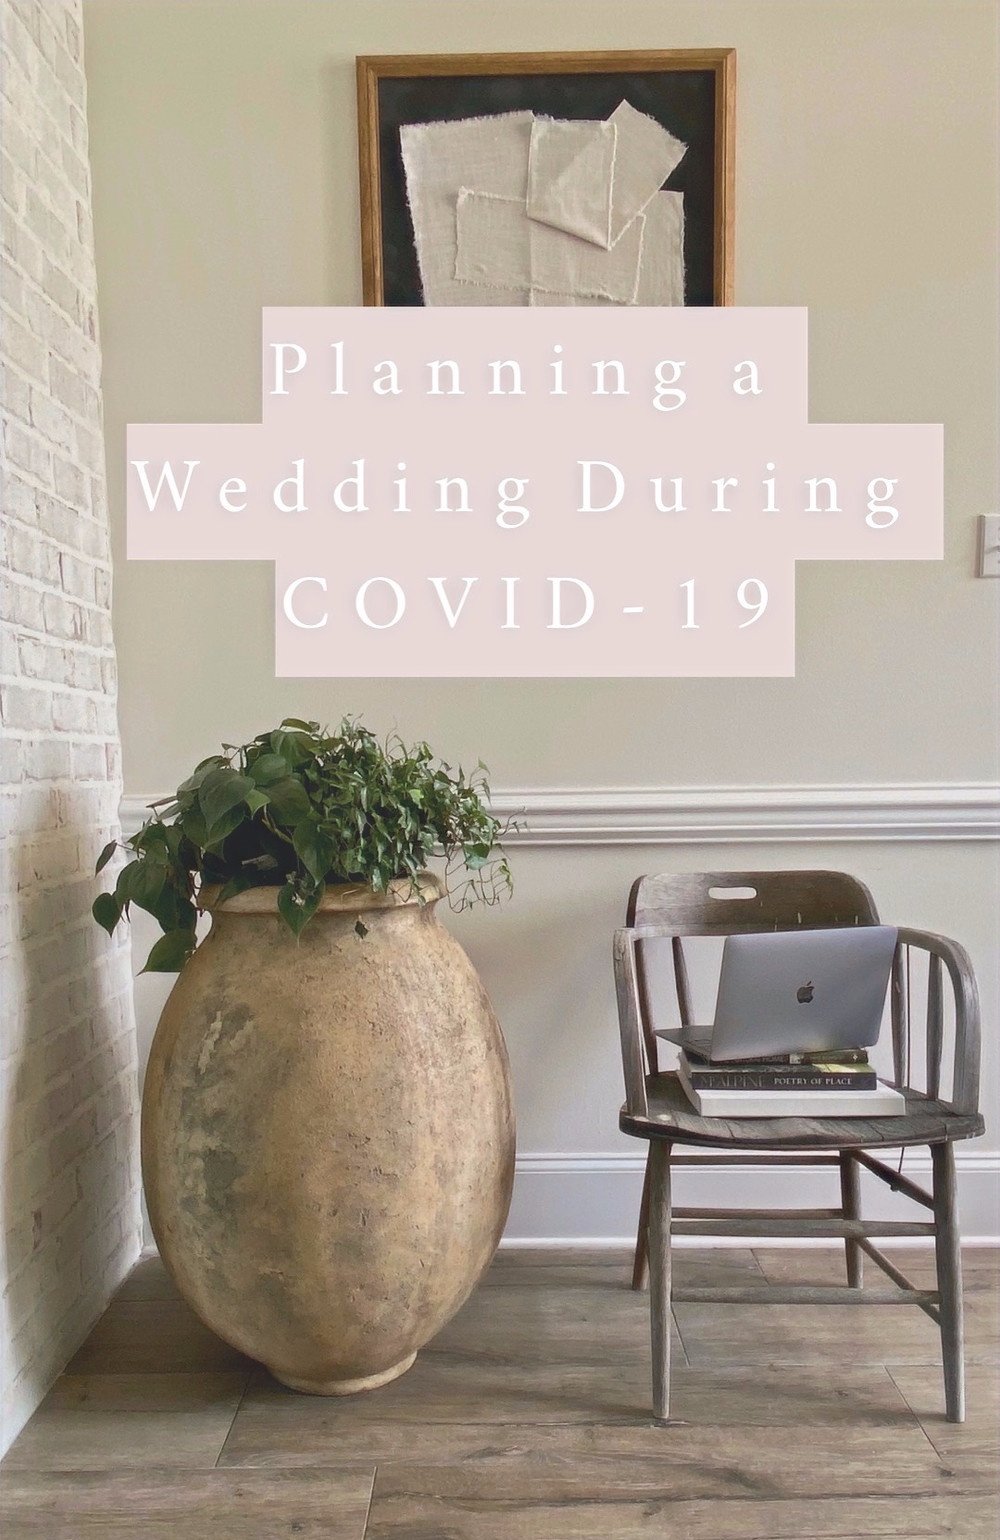 Planning a wedding during COVID-19 Coronavirus